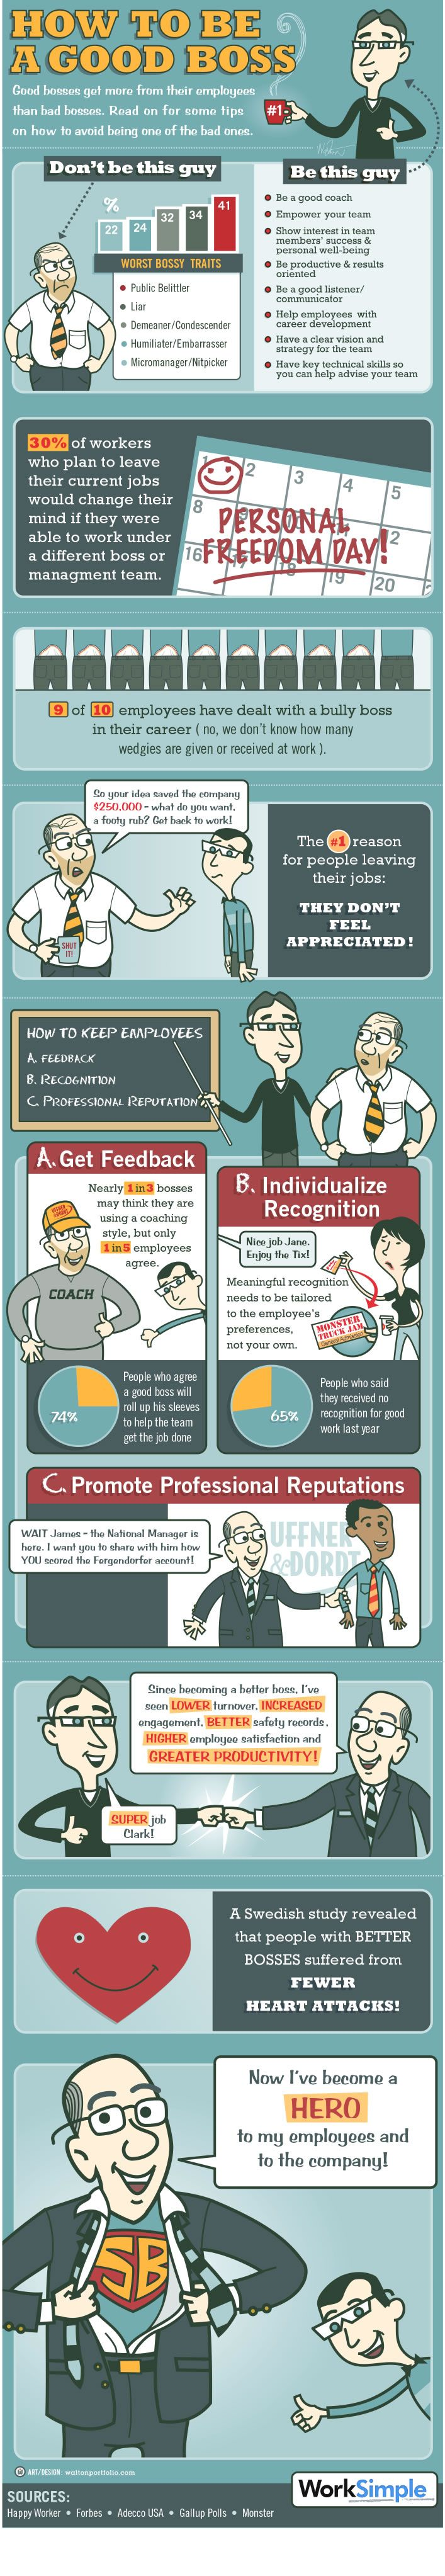 How to be a Good Boss [Infographic]